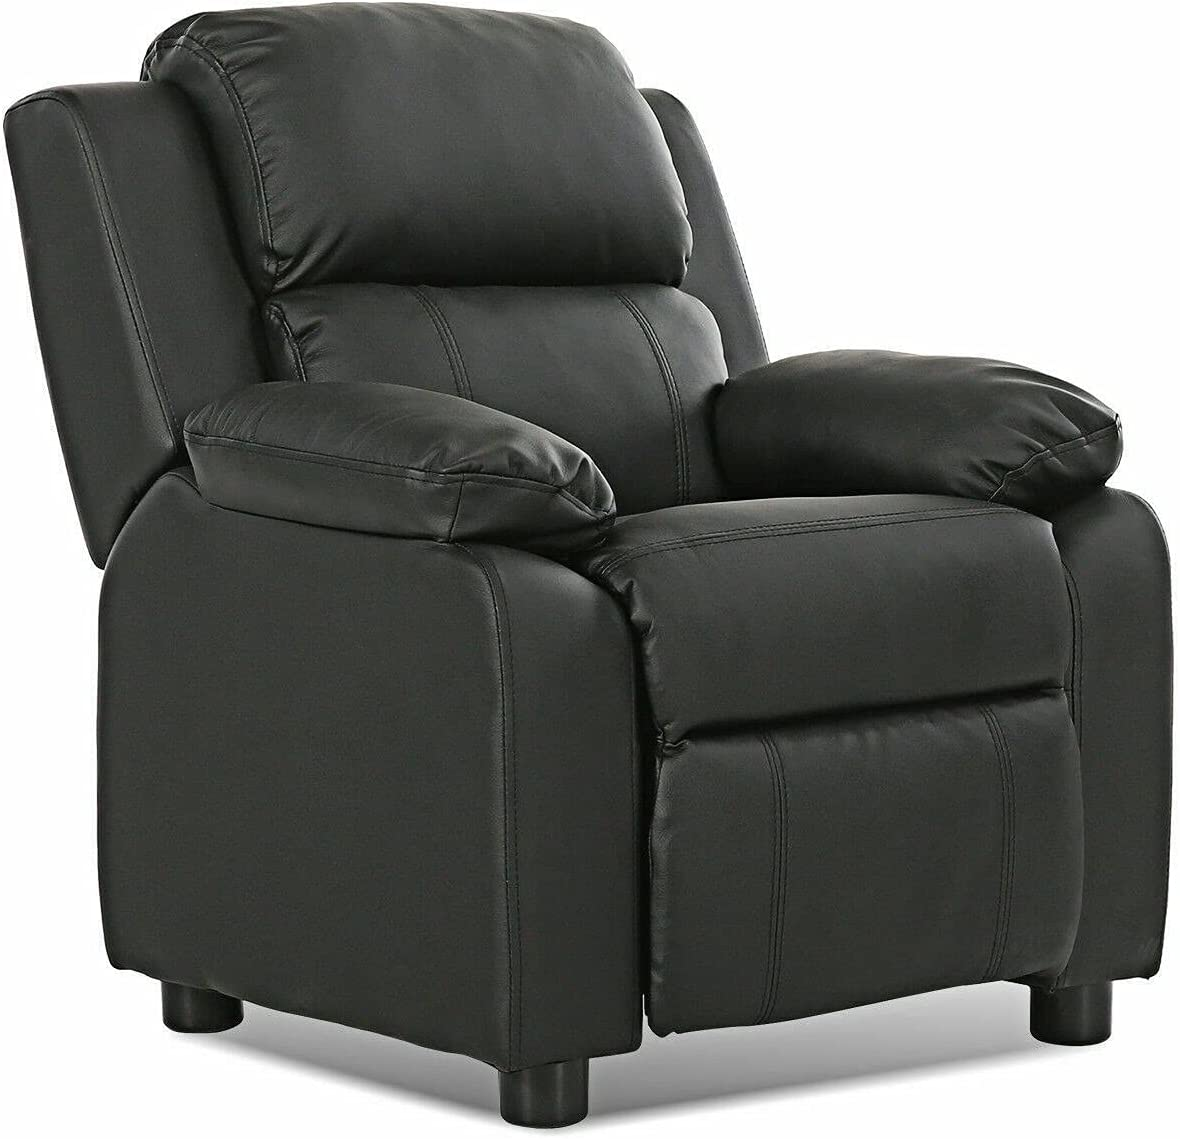 DXXWANG Home Dedication Deluxe Padded Kids Armchair H Sofa New Free Shipping Recliner Storage